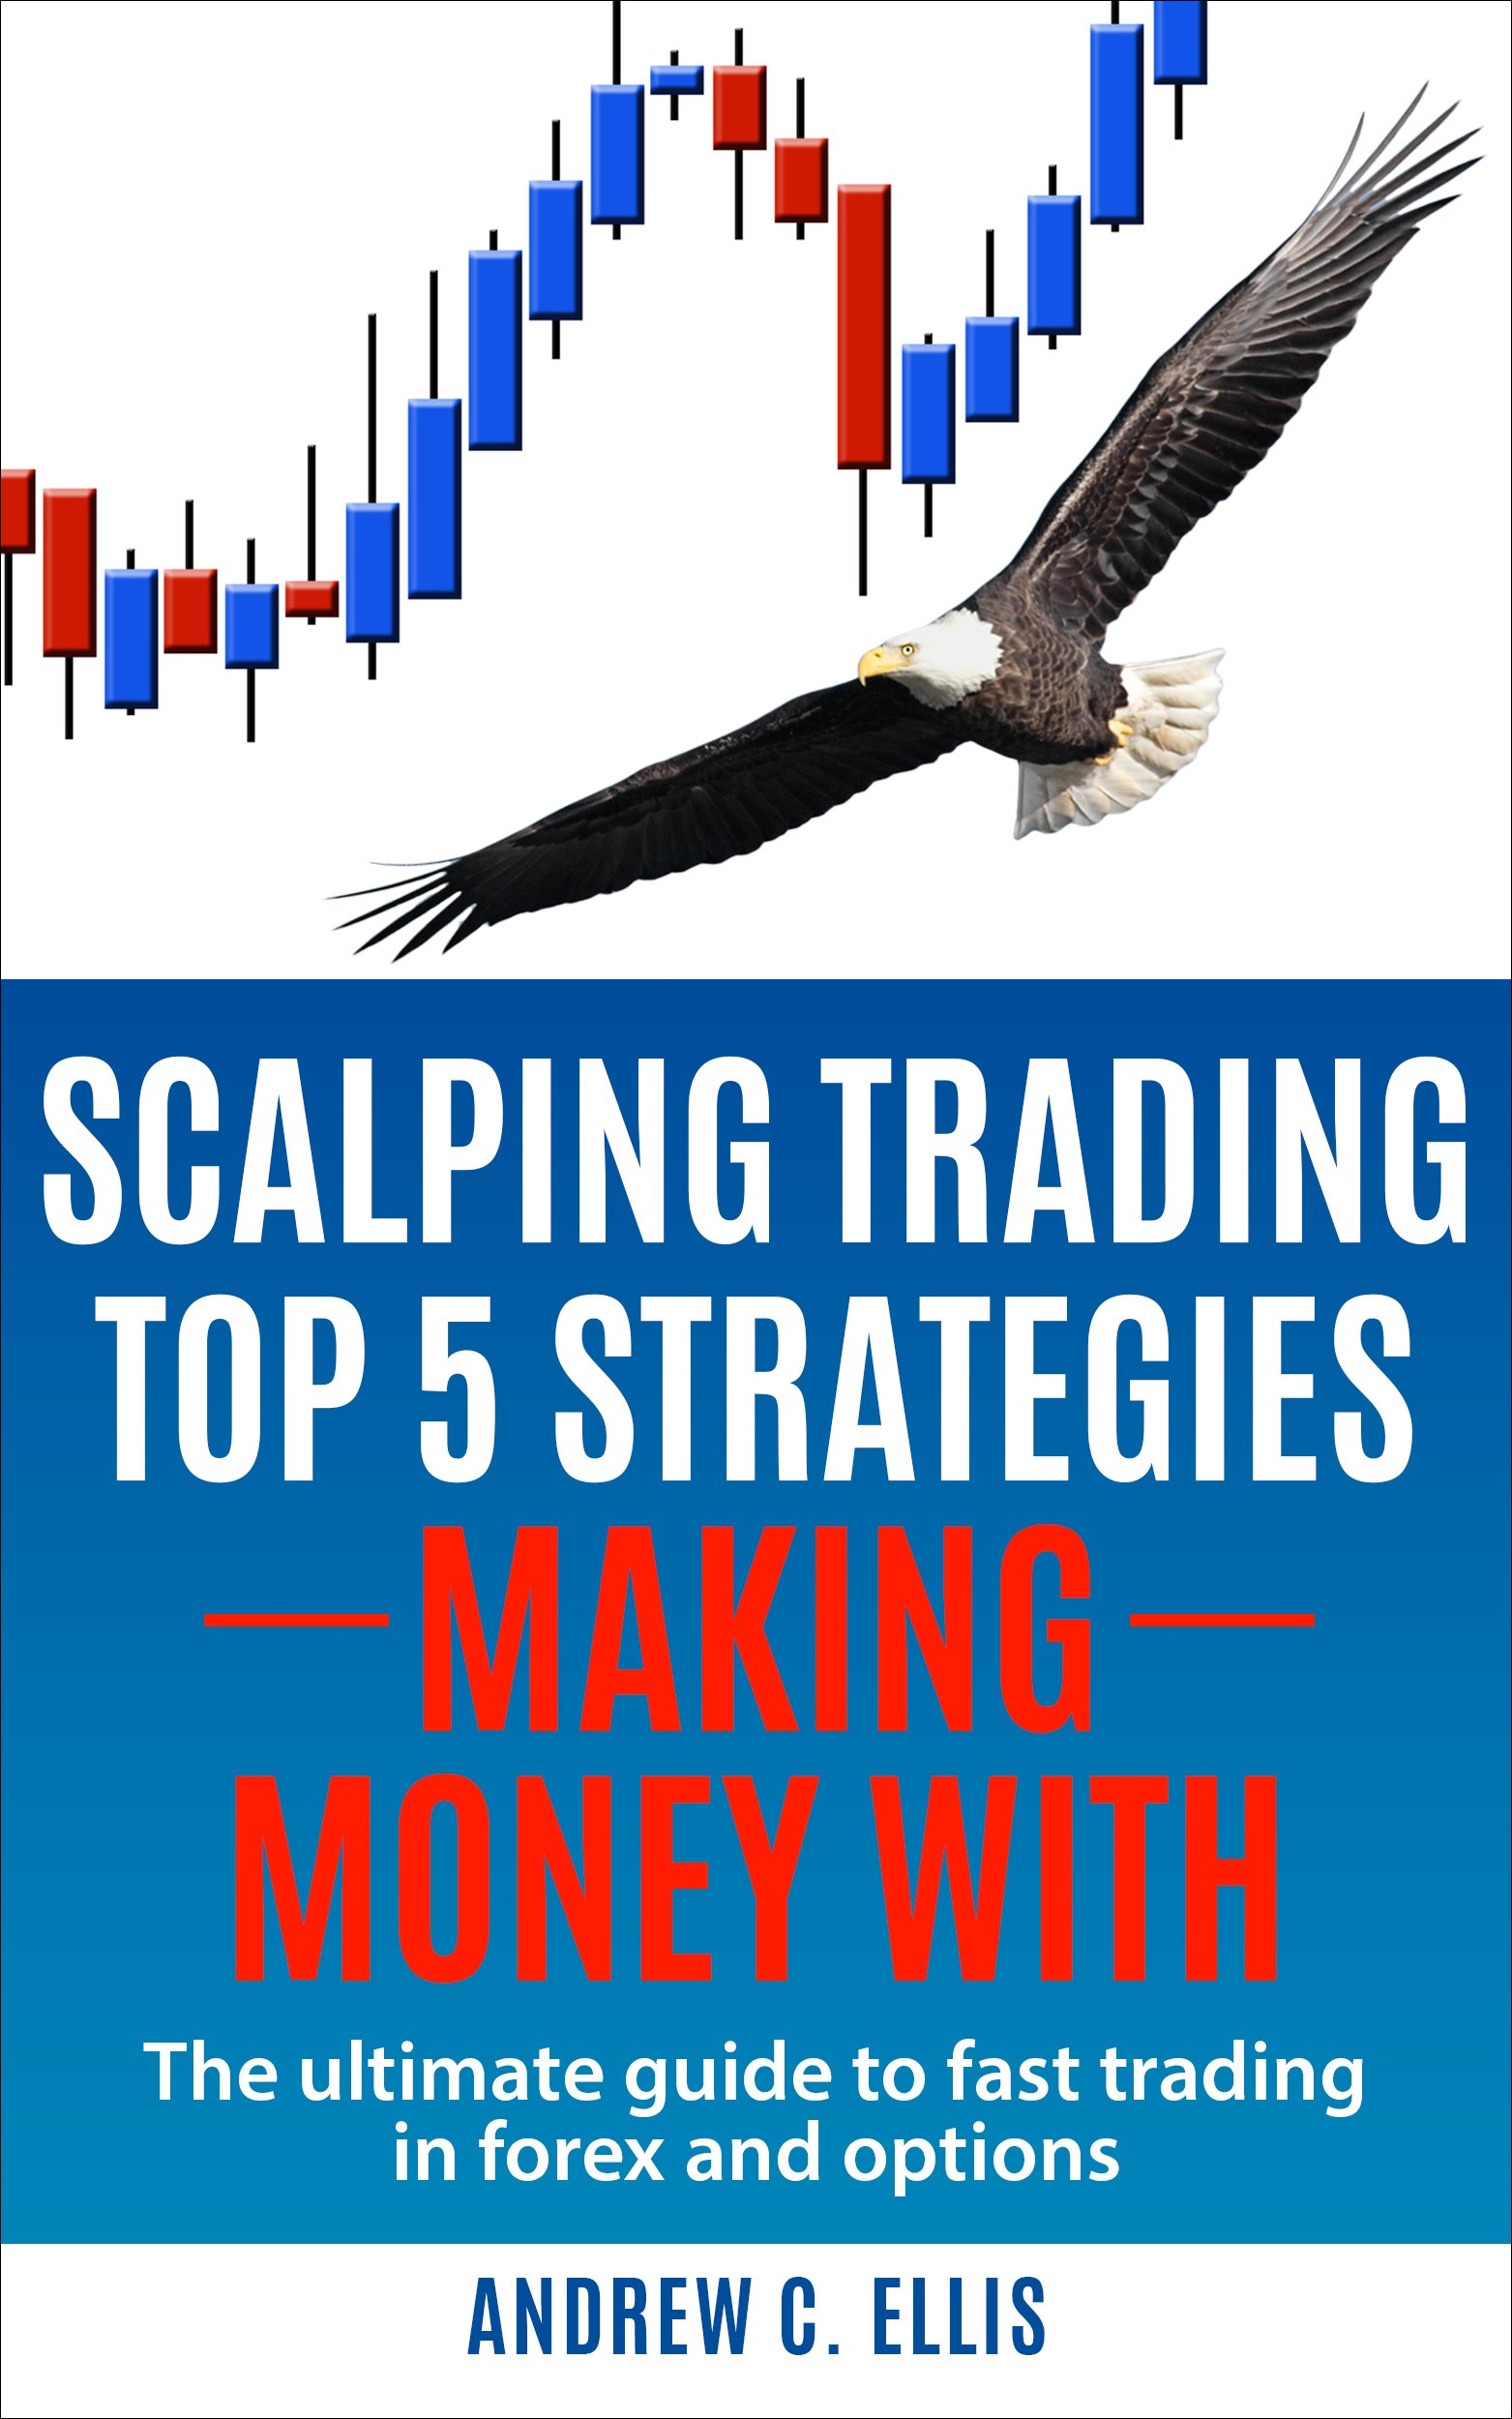 Scalping Trading Top 5 Strategies  Making Money With  The Ultimate Guide To Fast Trading In Forex And Options  English Edition